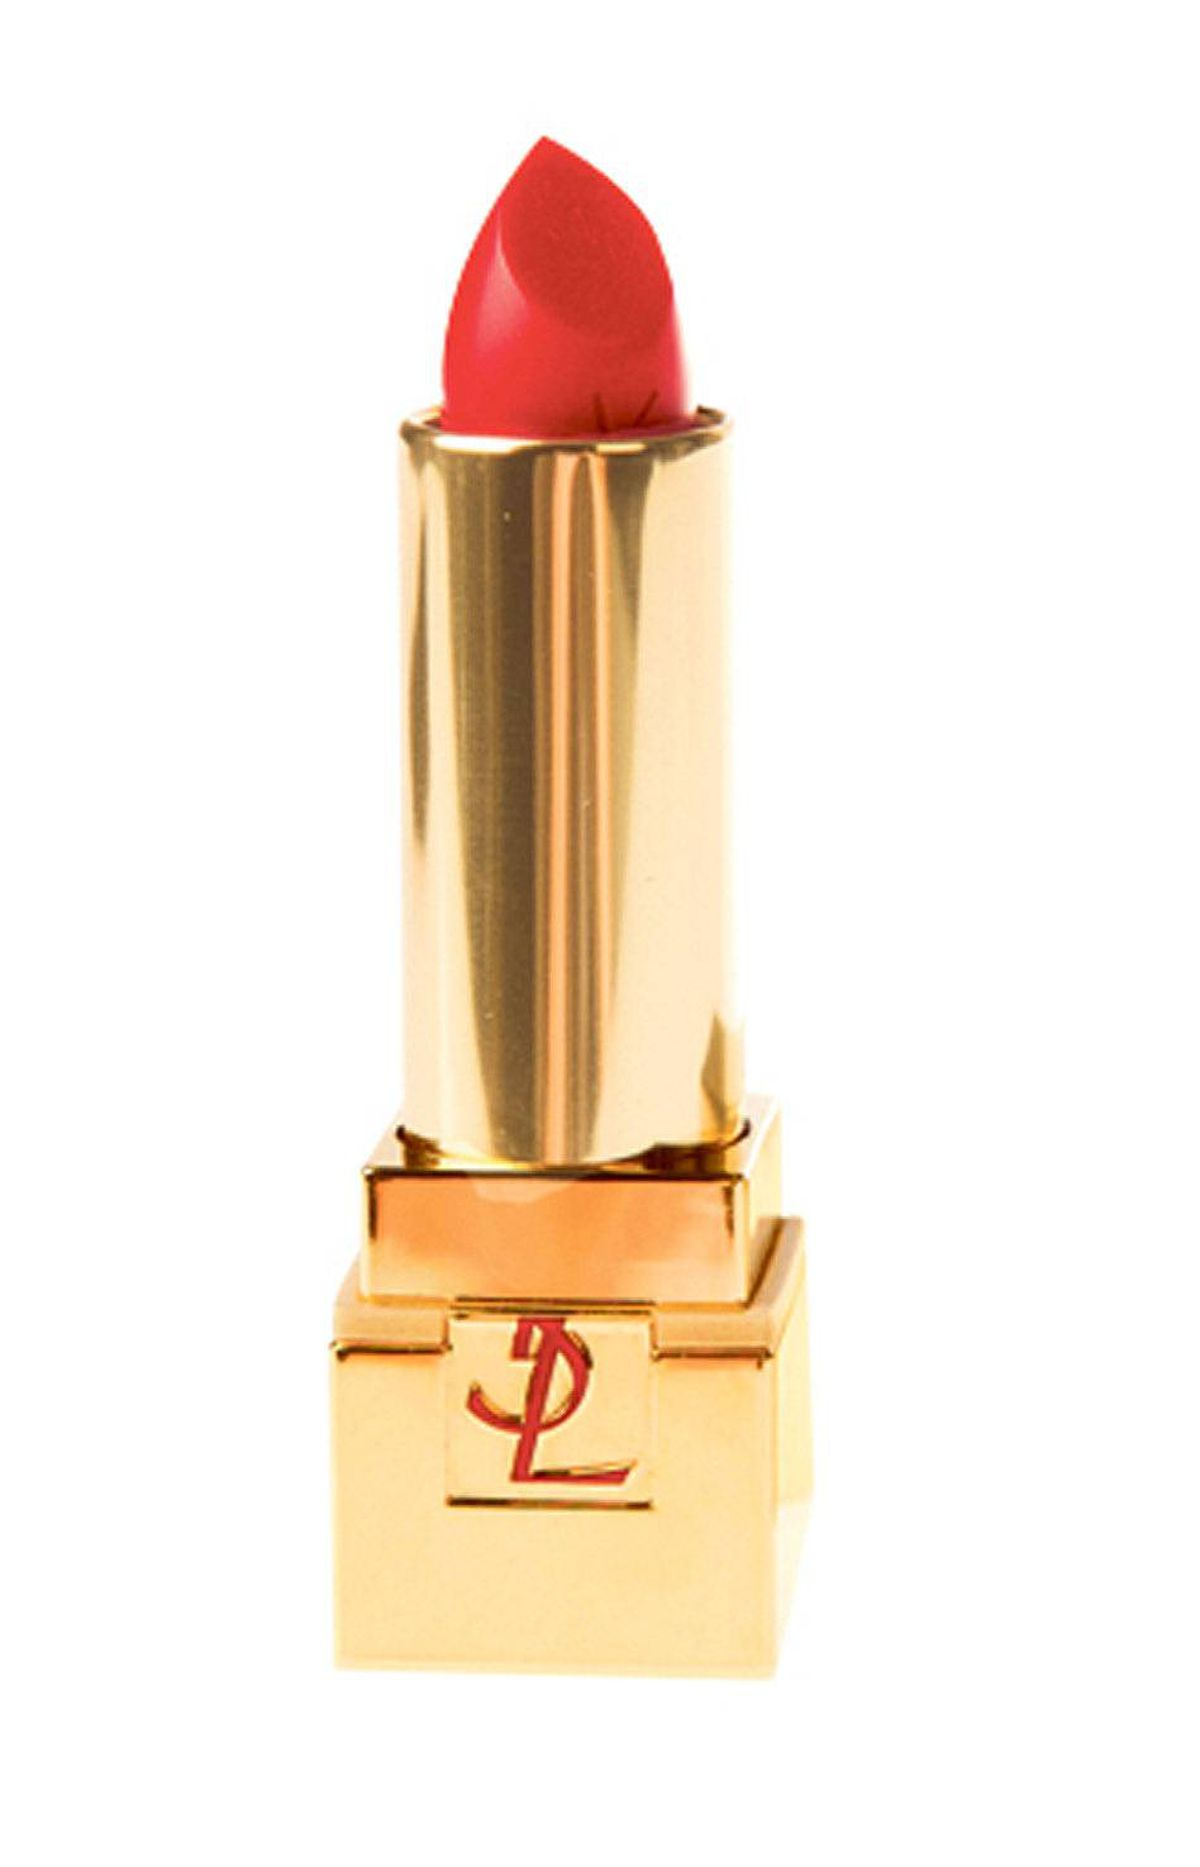 YSL Golden Lustre lipstick, $30 at department stores across Canada.